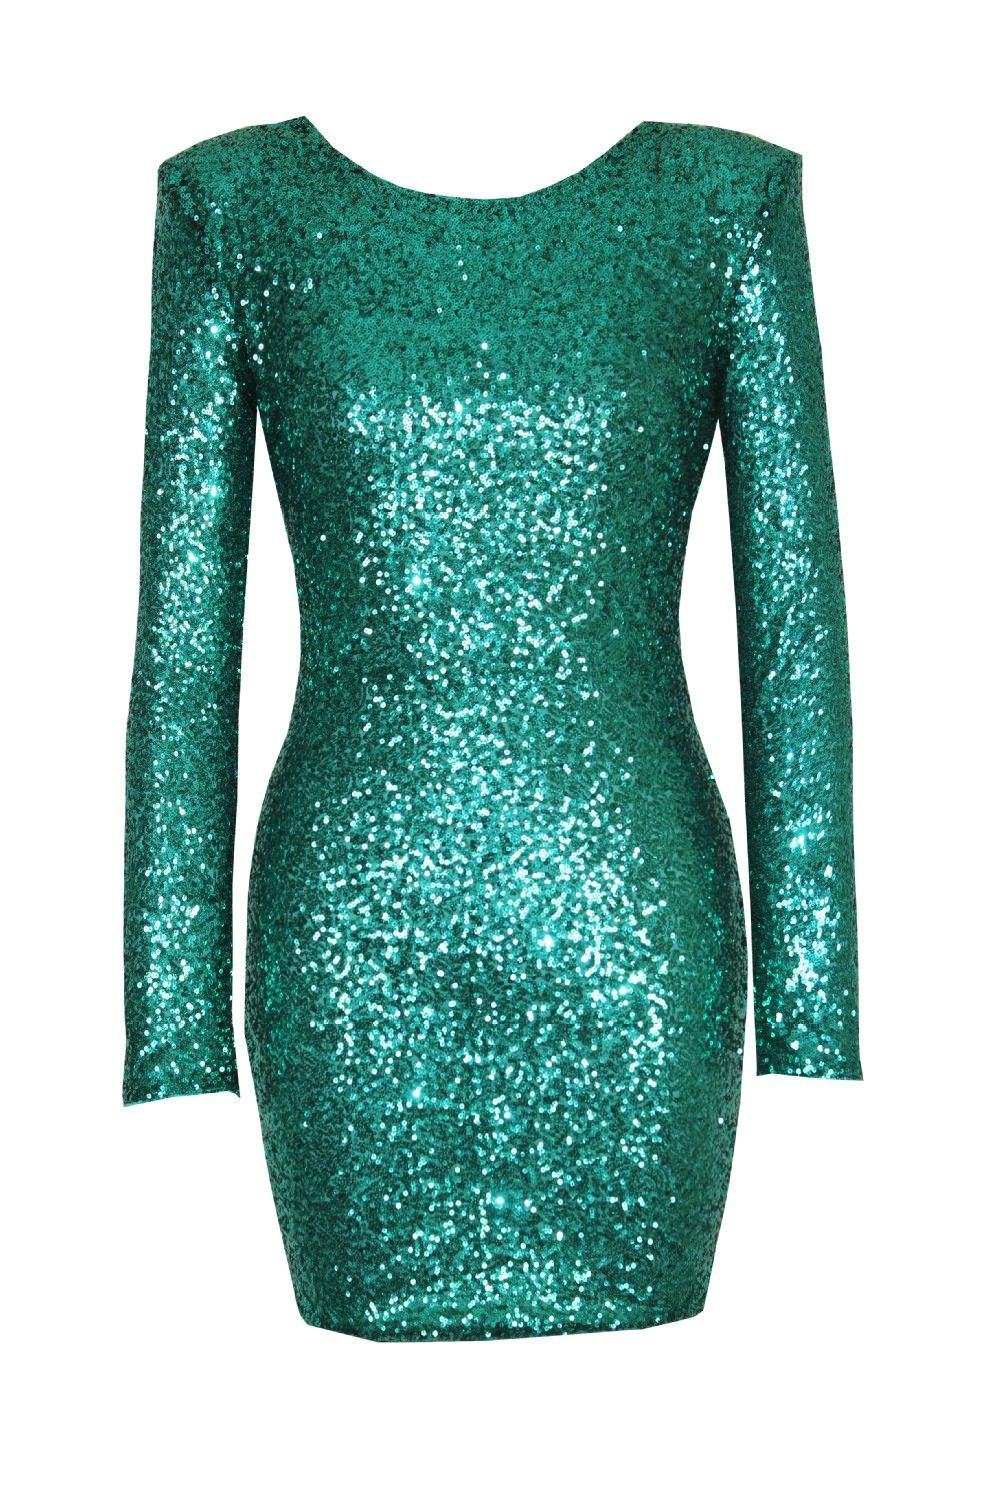 Green halter fitting long sleeved tight sequined dresses sequin